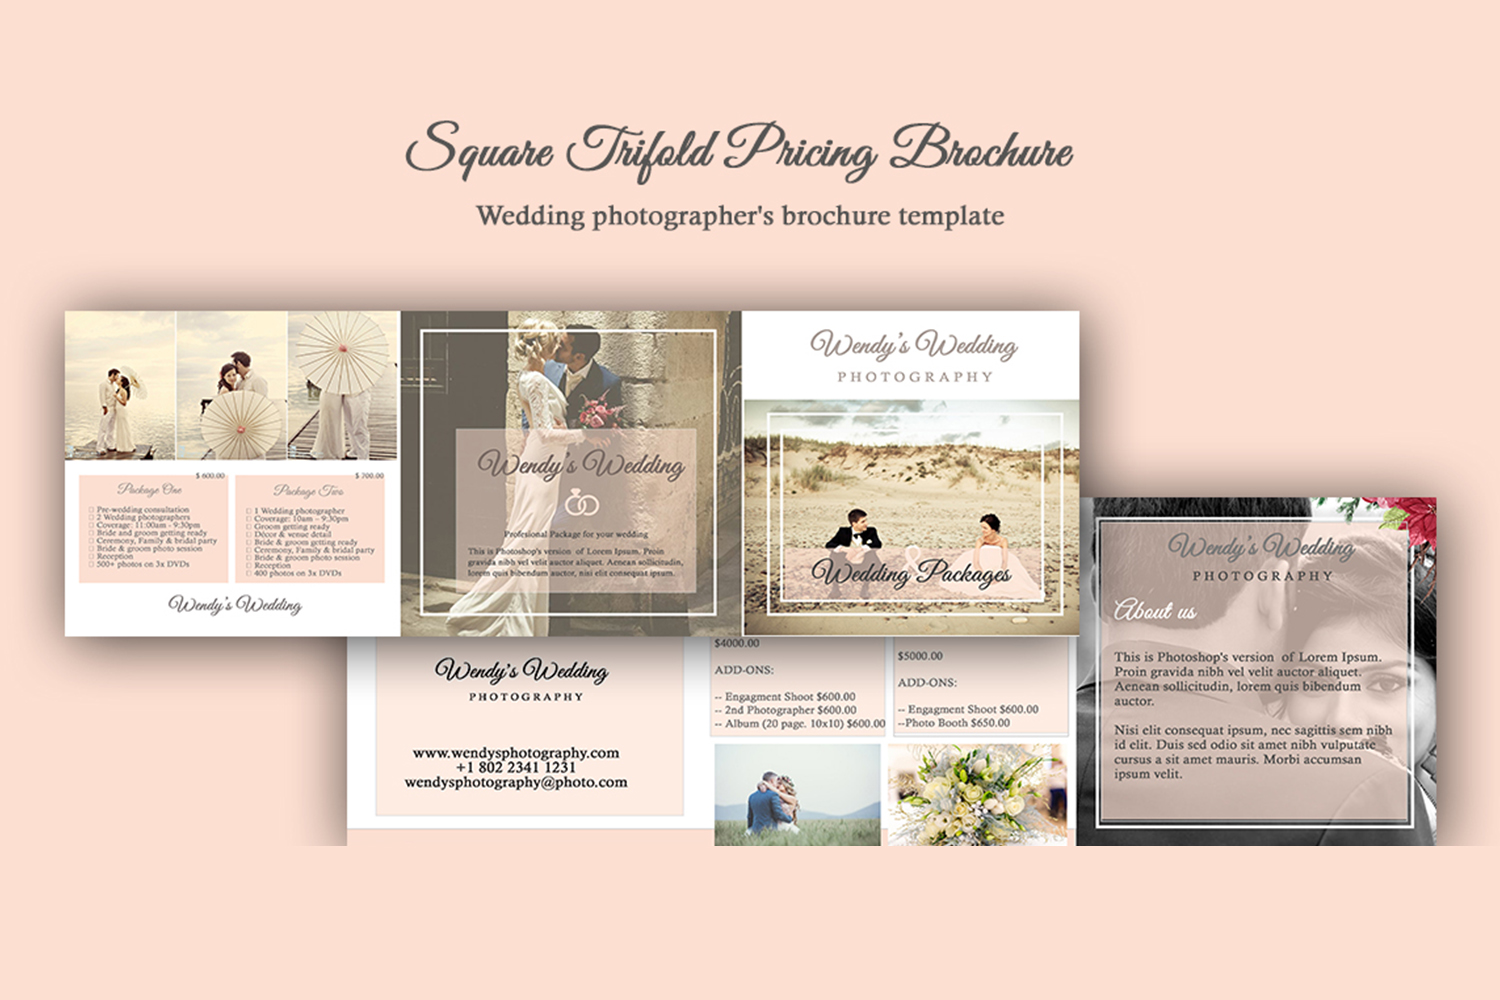 Wedding Trifold Pricing Brochure | 5X5 - Instant Instant dow example image 1